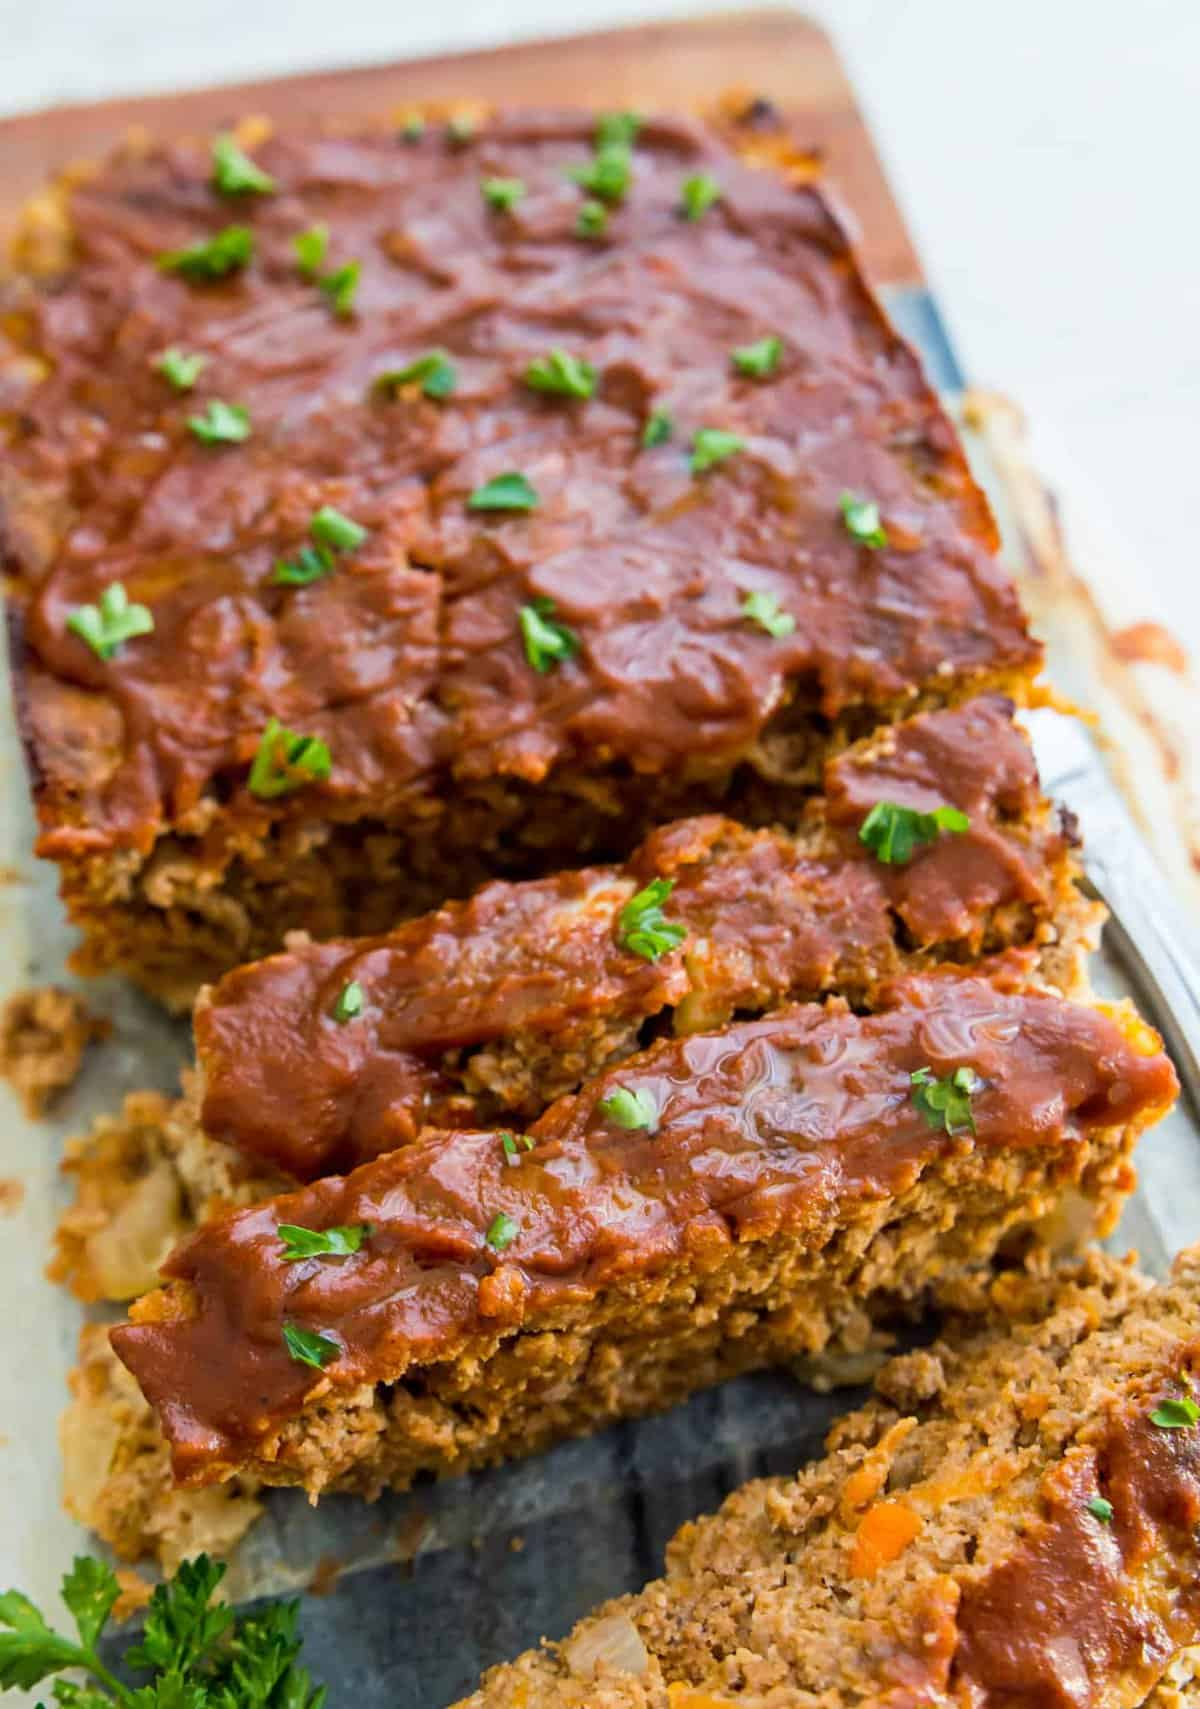 Whole30 meatloaf topped with bbq sauce and sliced into pieces